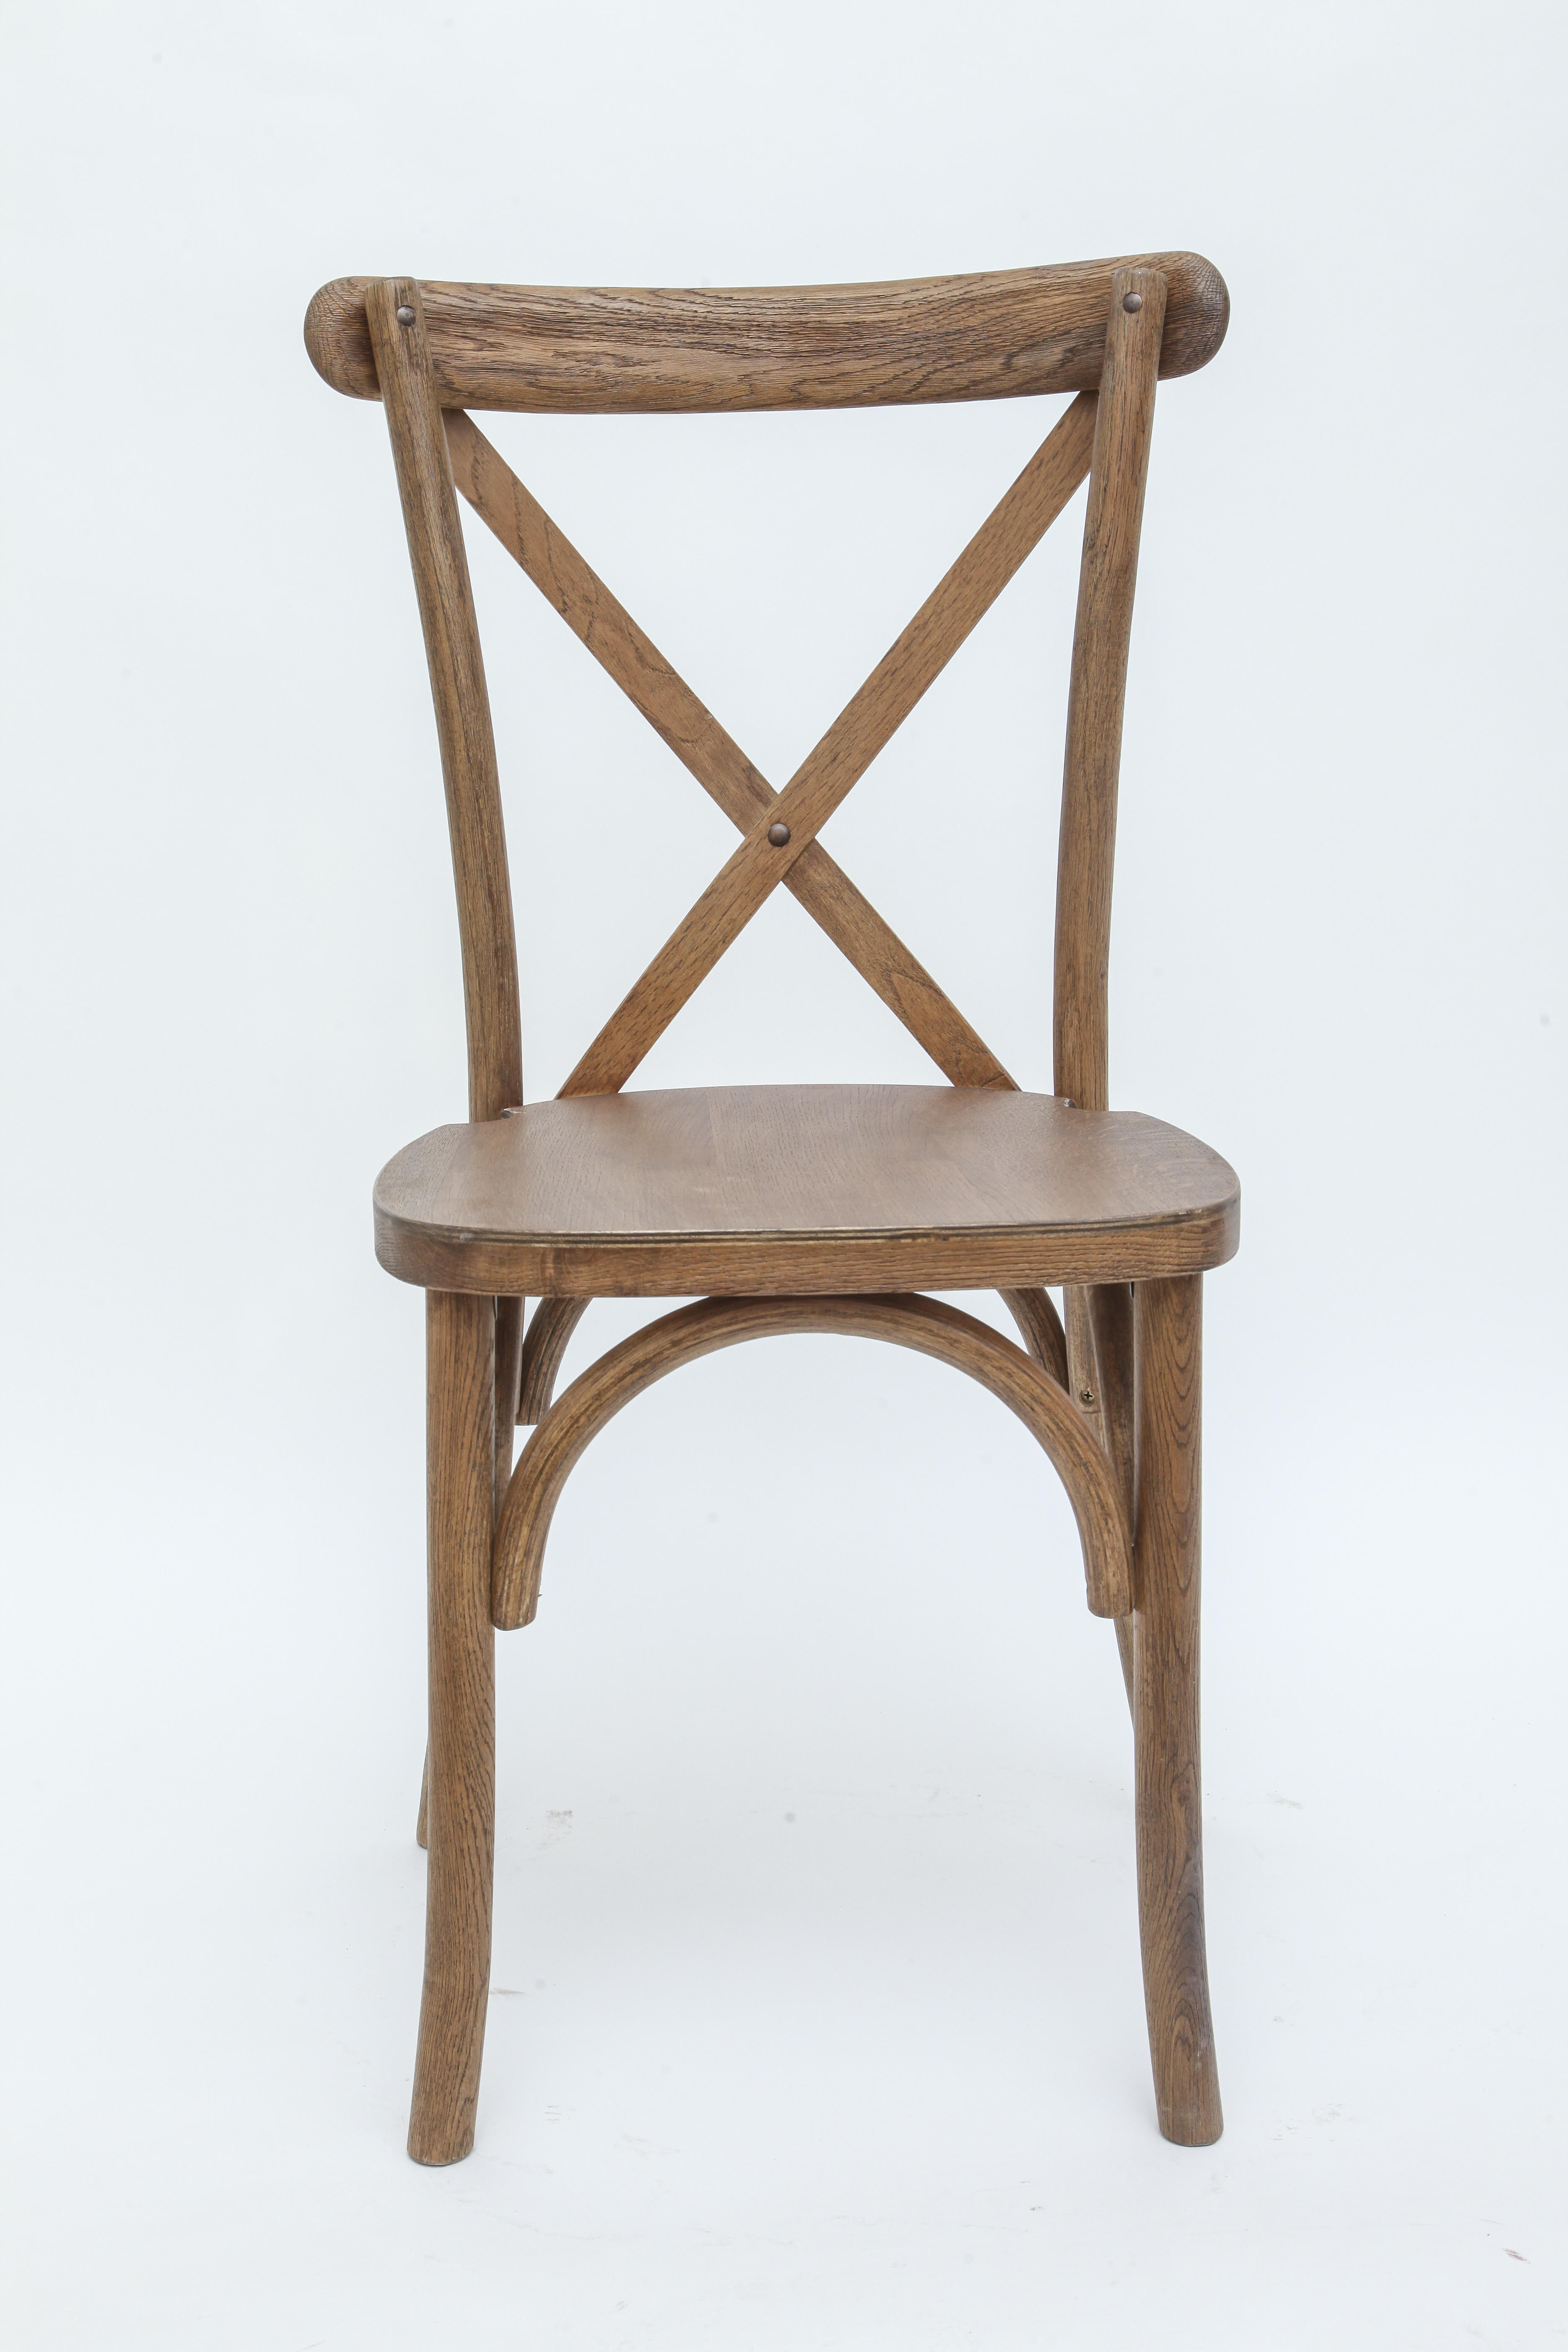 Cross back chair hire perth wa